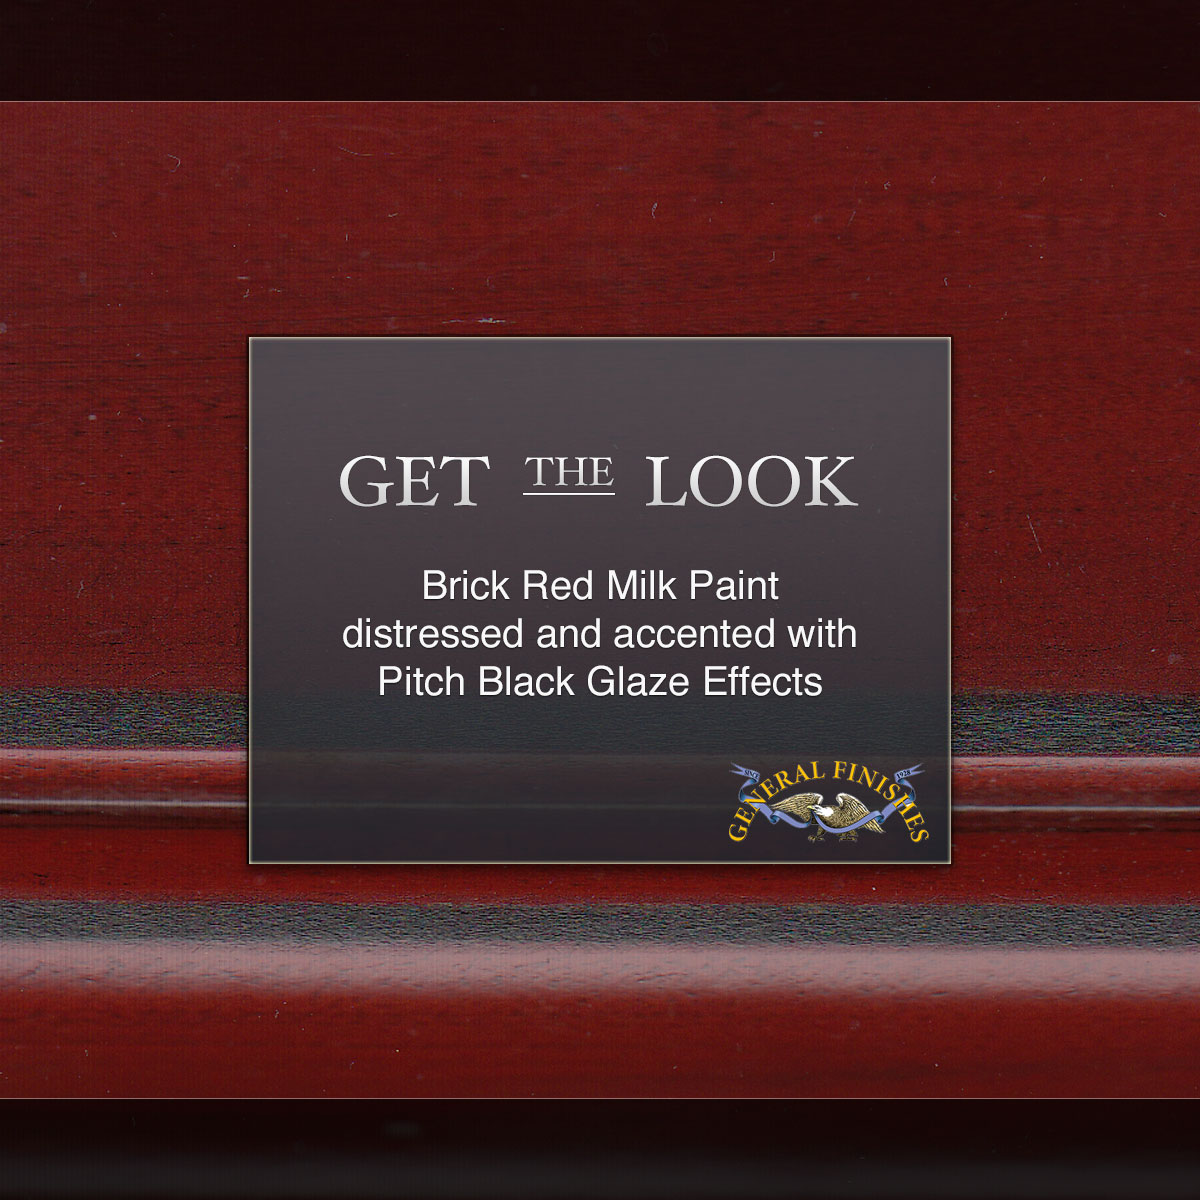 92bb191fbb6a Get The Look  Brick Red Milk Paint hand-distressed with Pitch Black Glaze